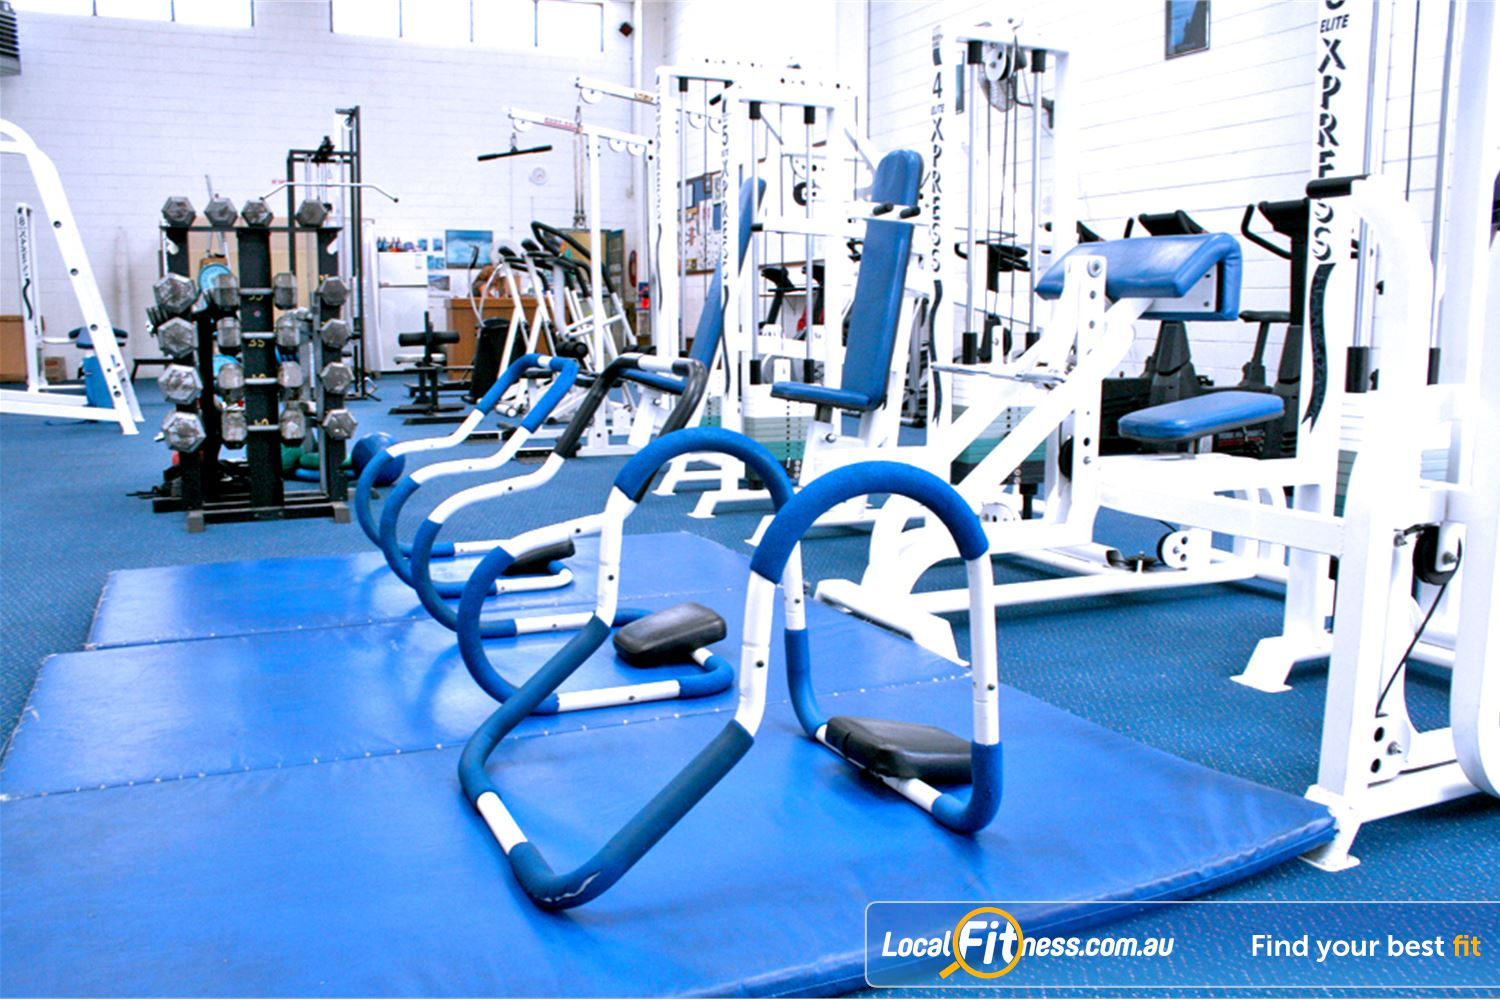 Leading Edge Health & Fitness Glen Waverley Dedicated stretching and ab training area.